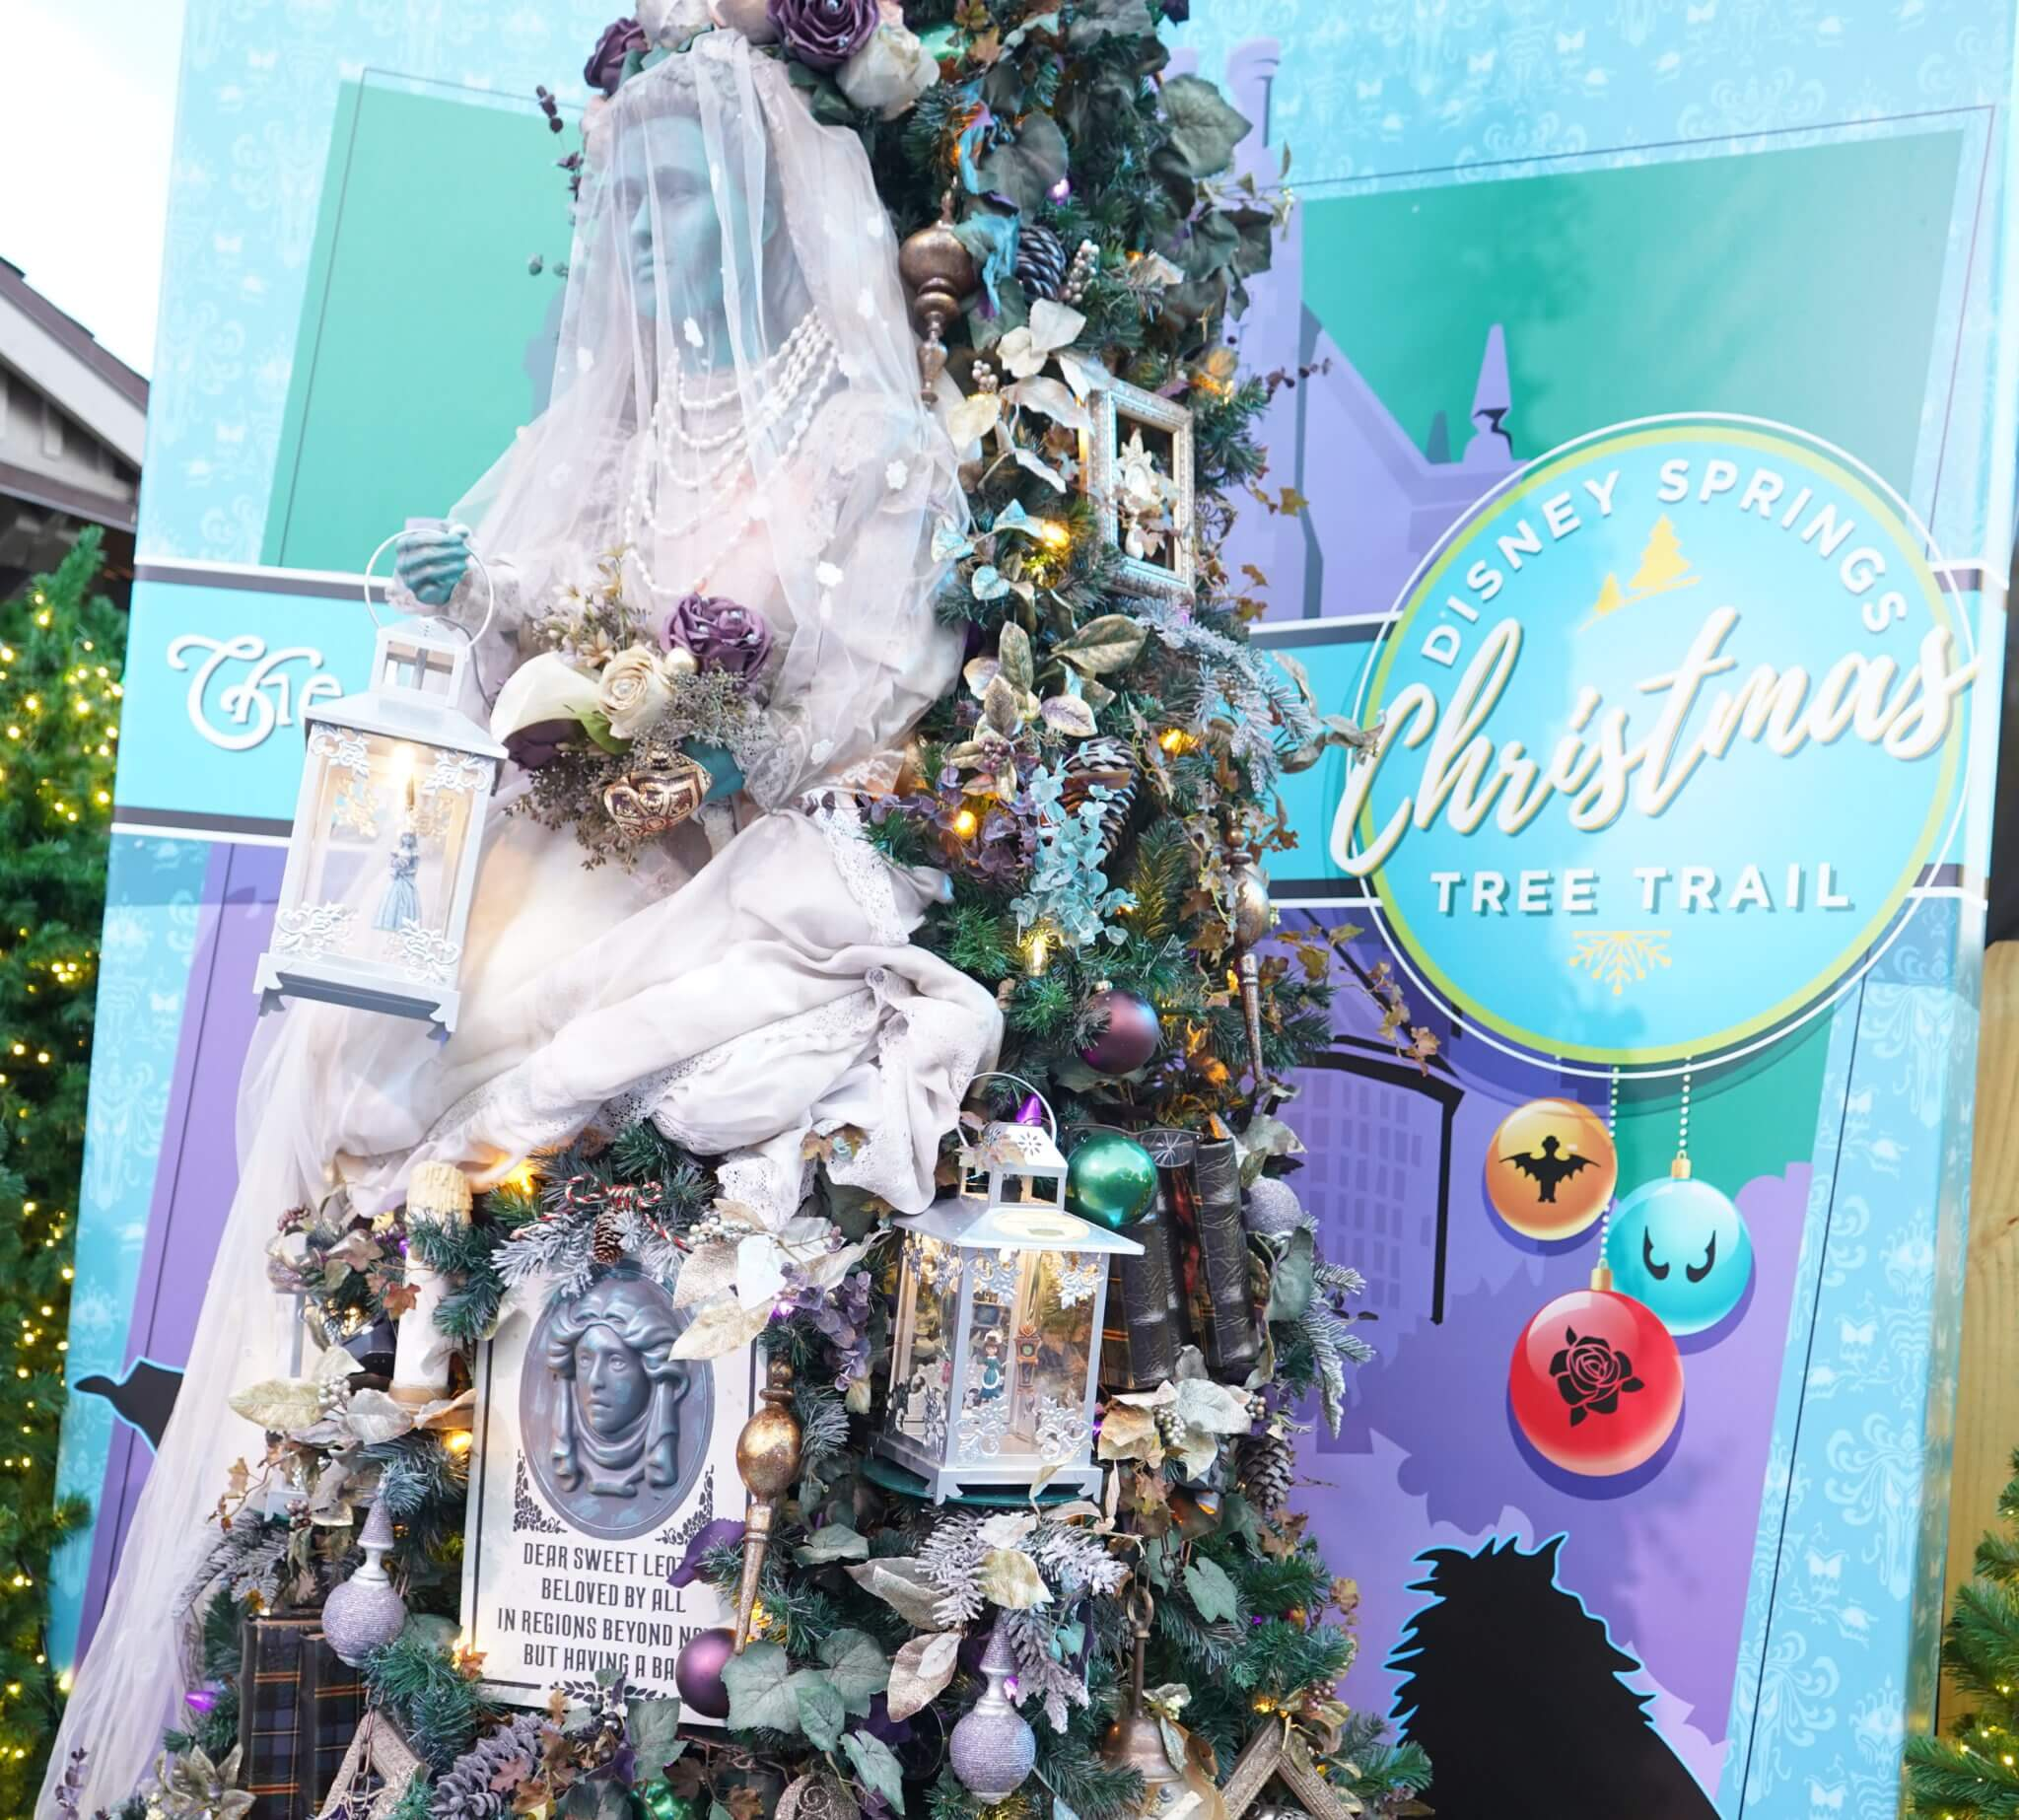 Haunted Mansion Bride in Christmas Tree Trail at Disney Springs